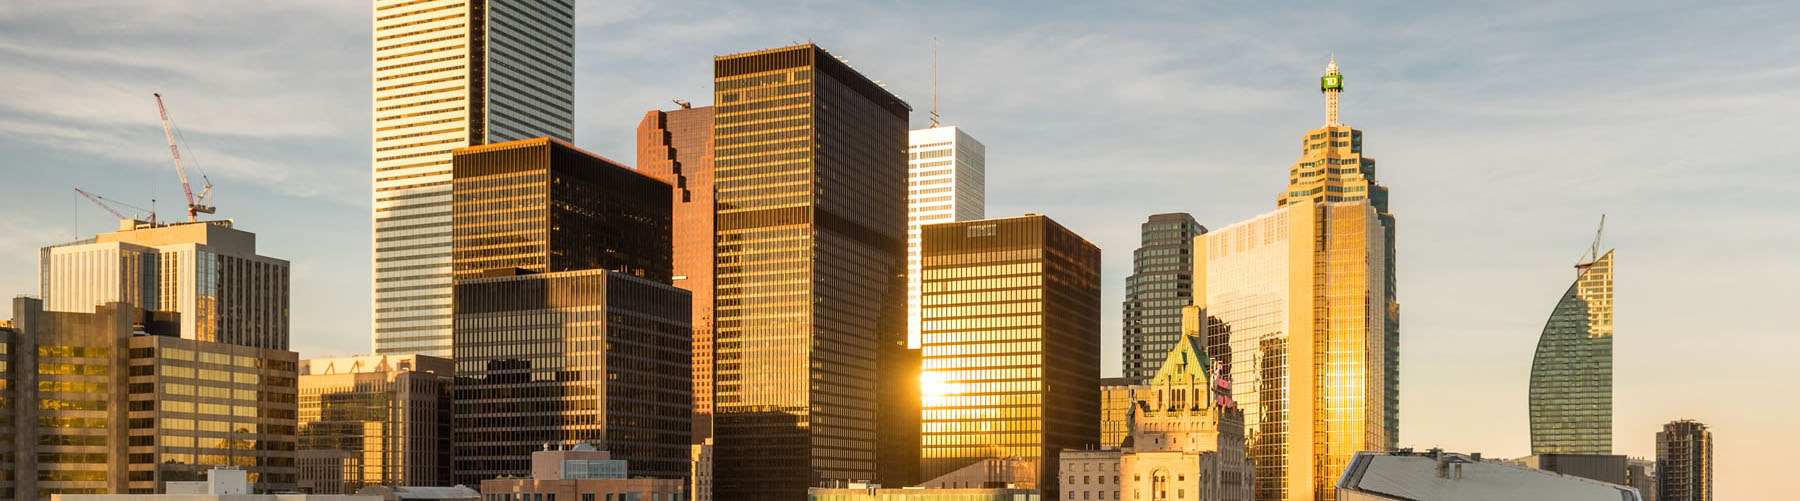 Cityscape of the financial district in Toronto